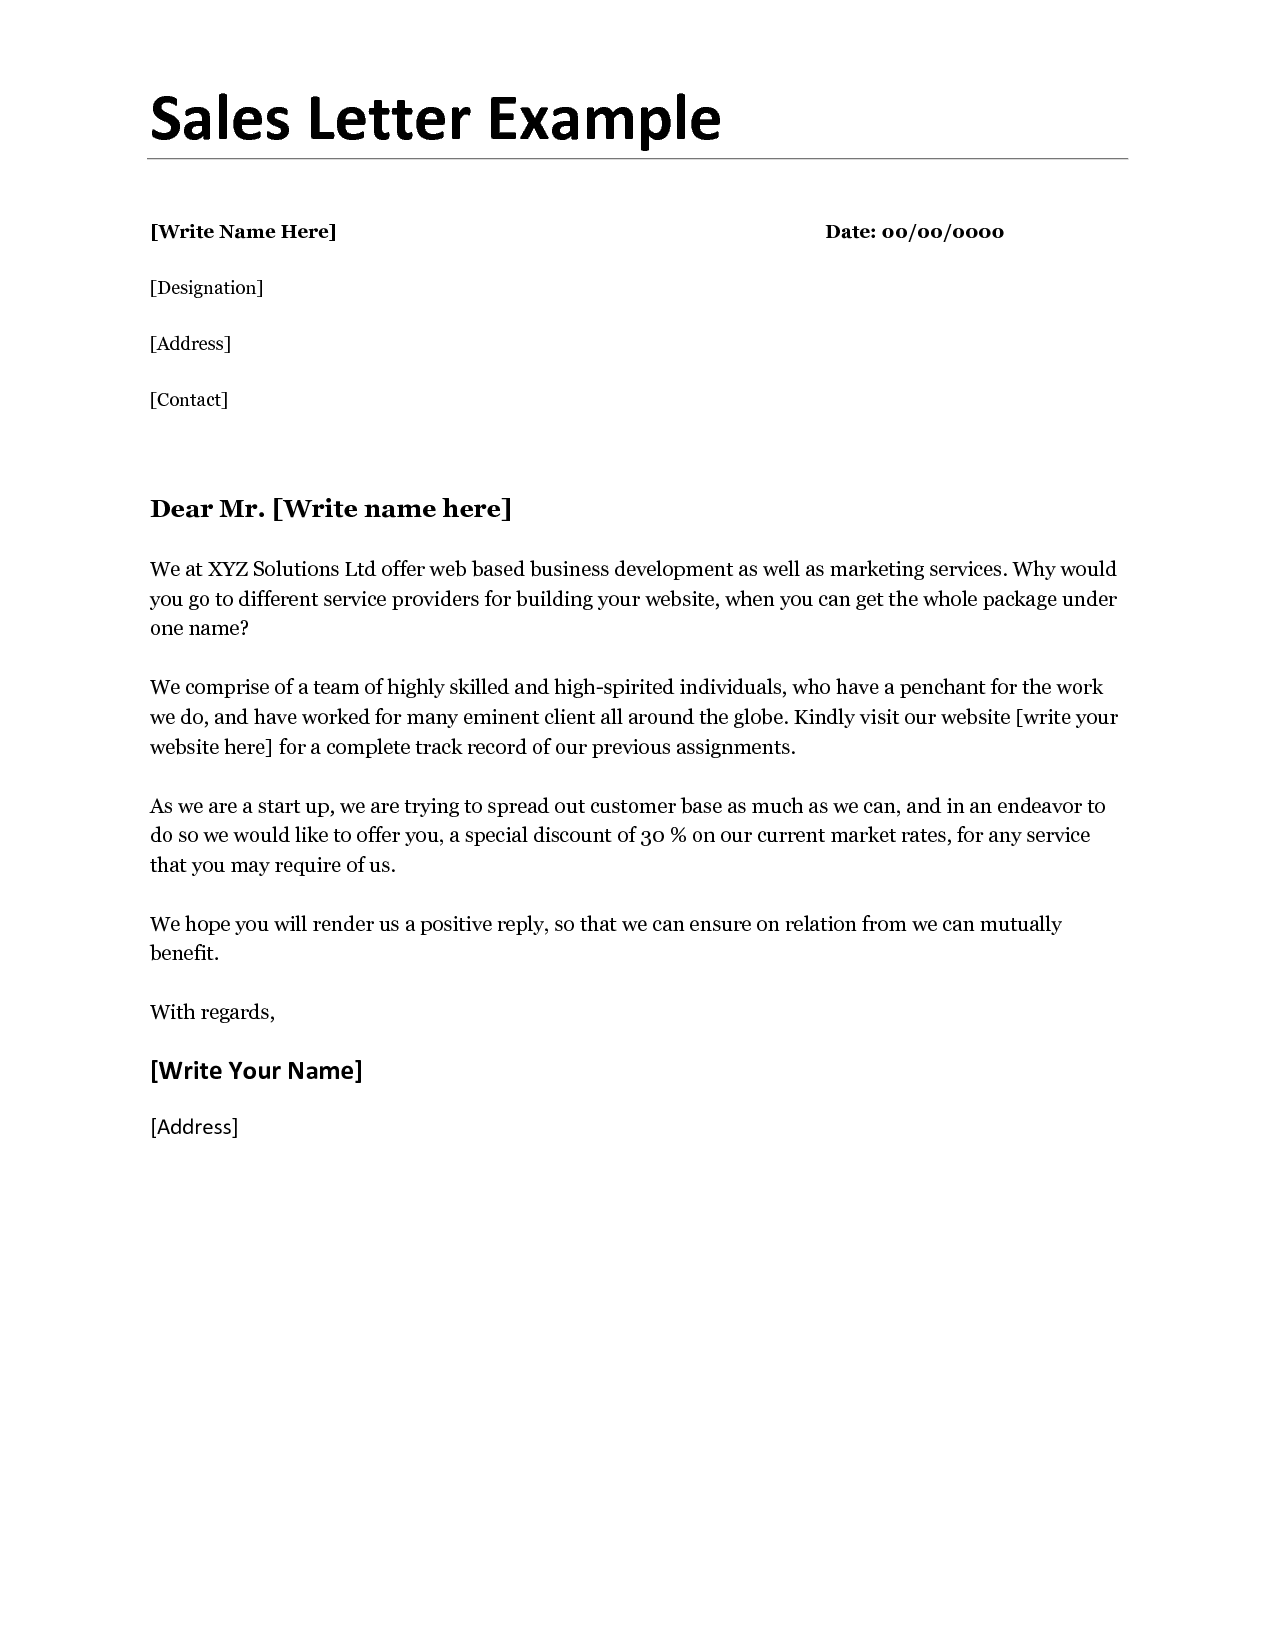 Business Sales Letter Mughals Business Business Business Sales